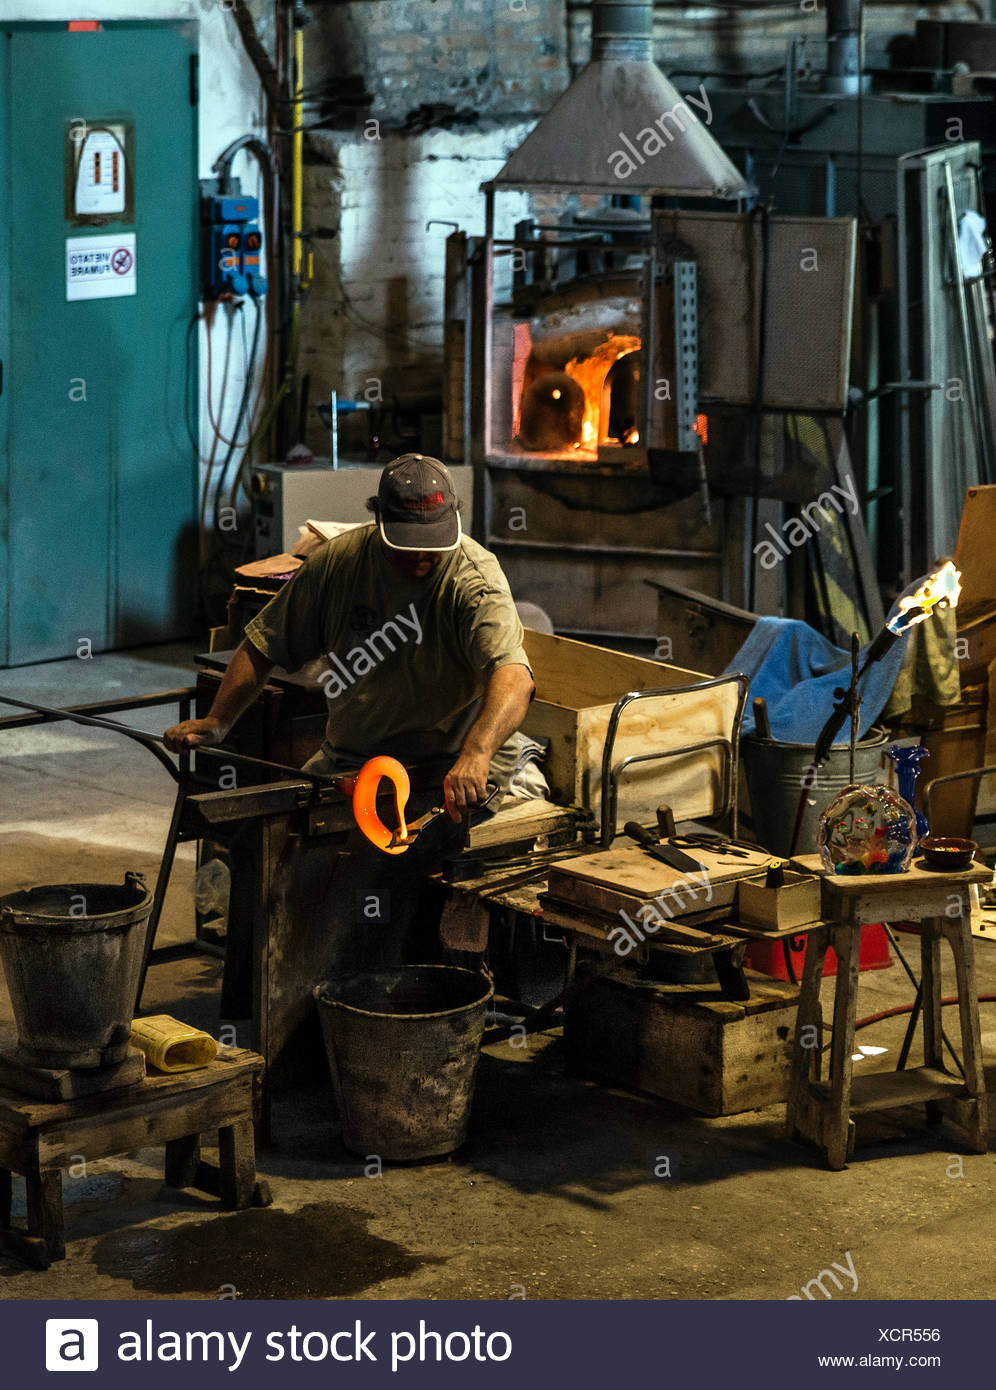 Glassmith working, Venitian island of Murano, Italy. Famous for it's many furnaces and hand made glass. - Stock Image